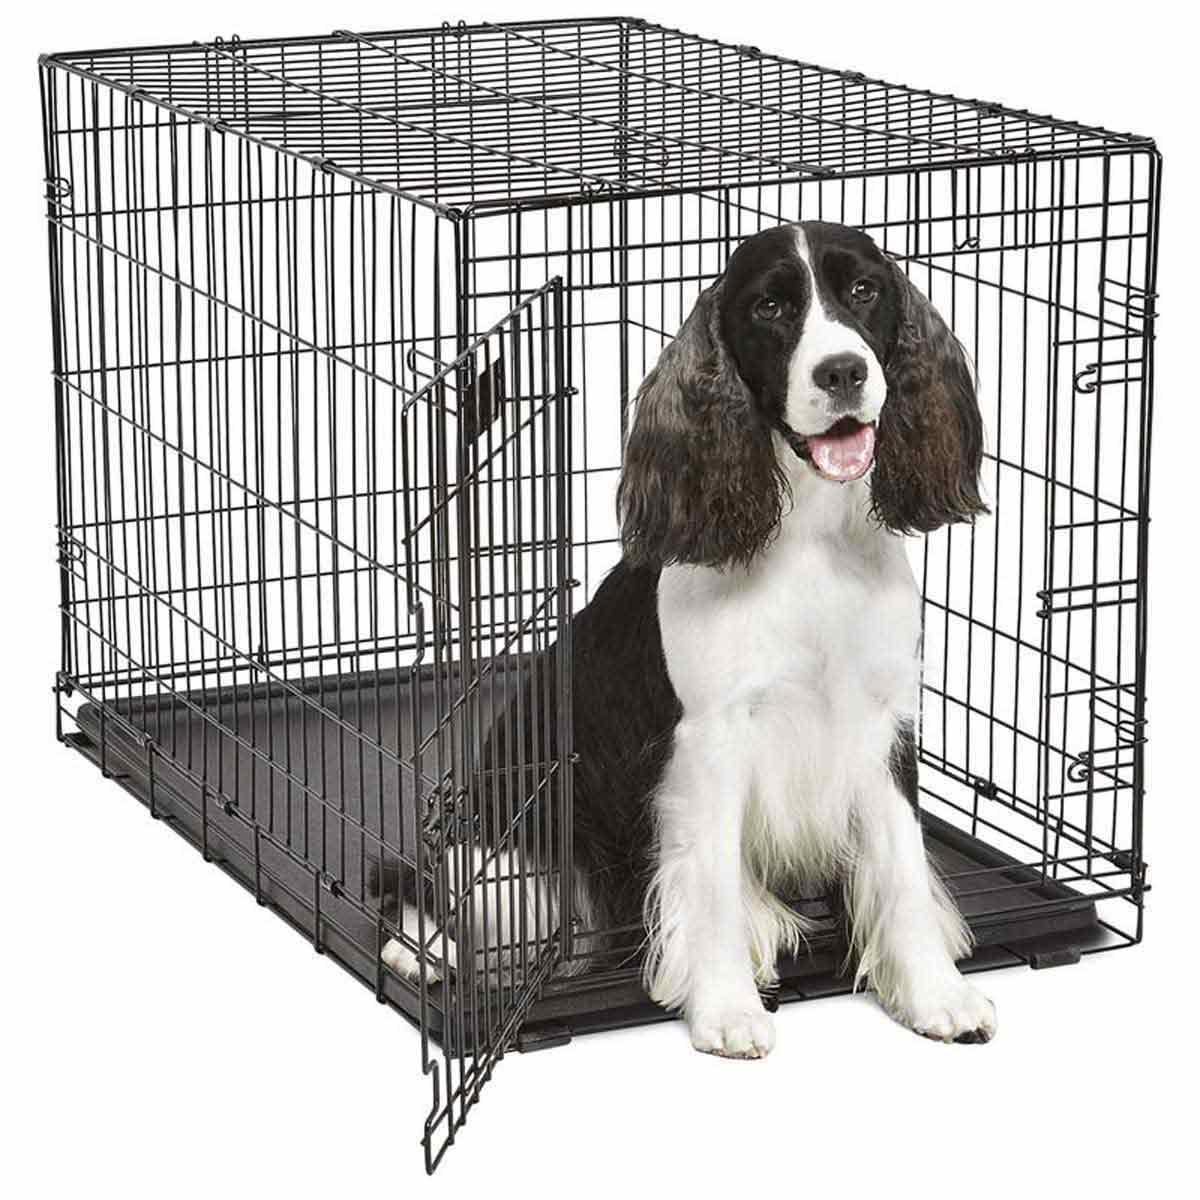 Midwest ConTour Single Door Crate for Dogs - 36 inches by 22 inches by 24 inches